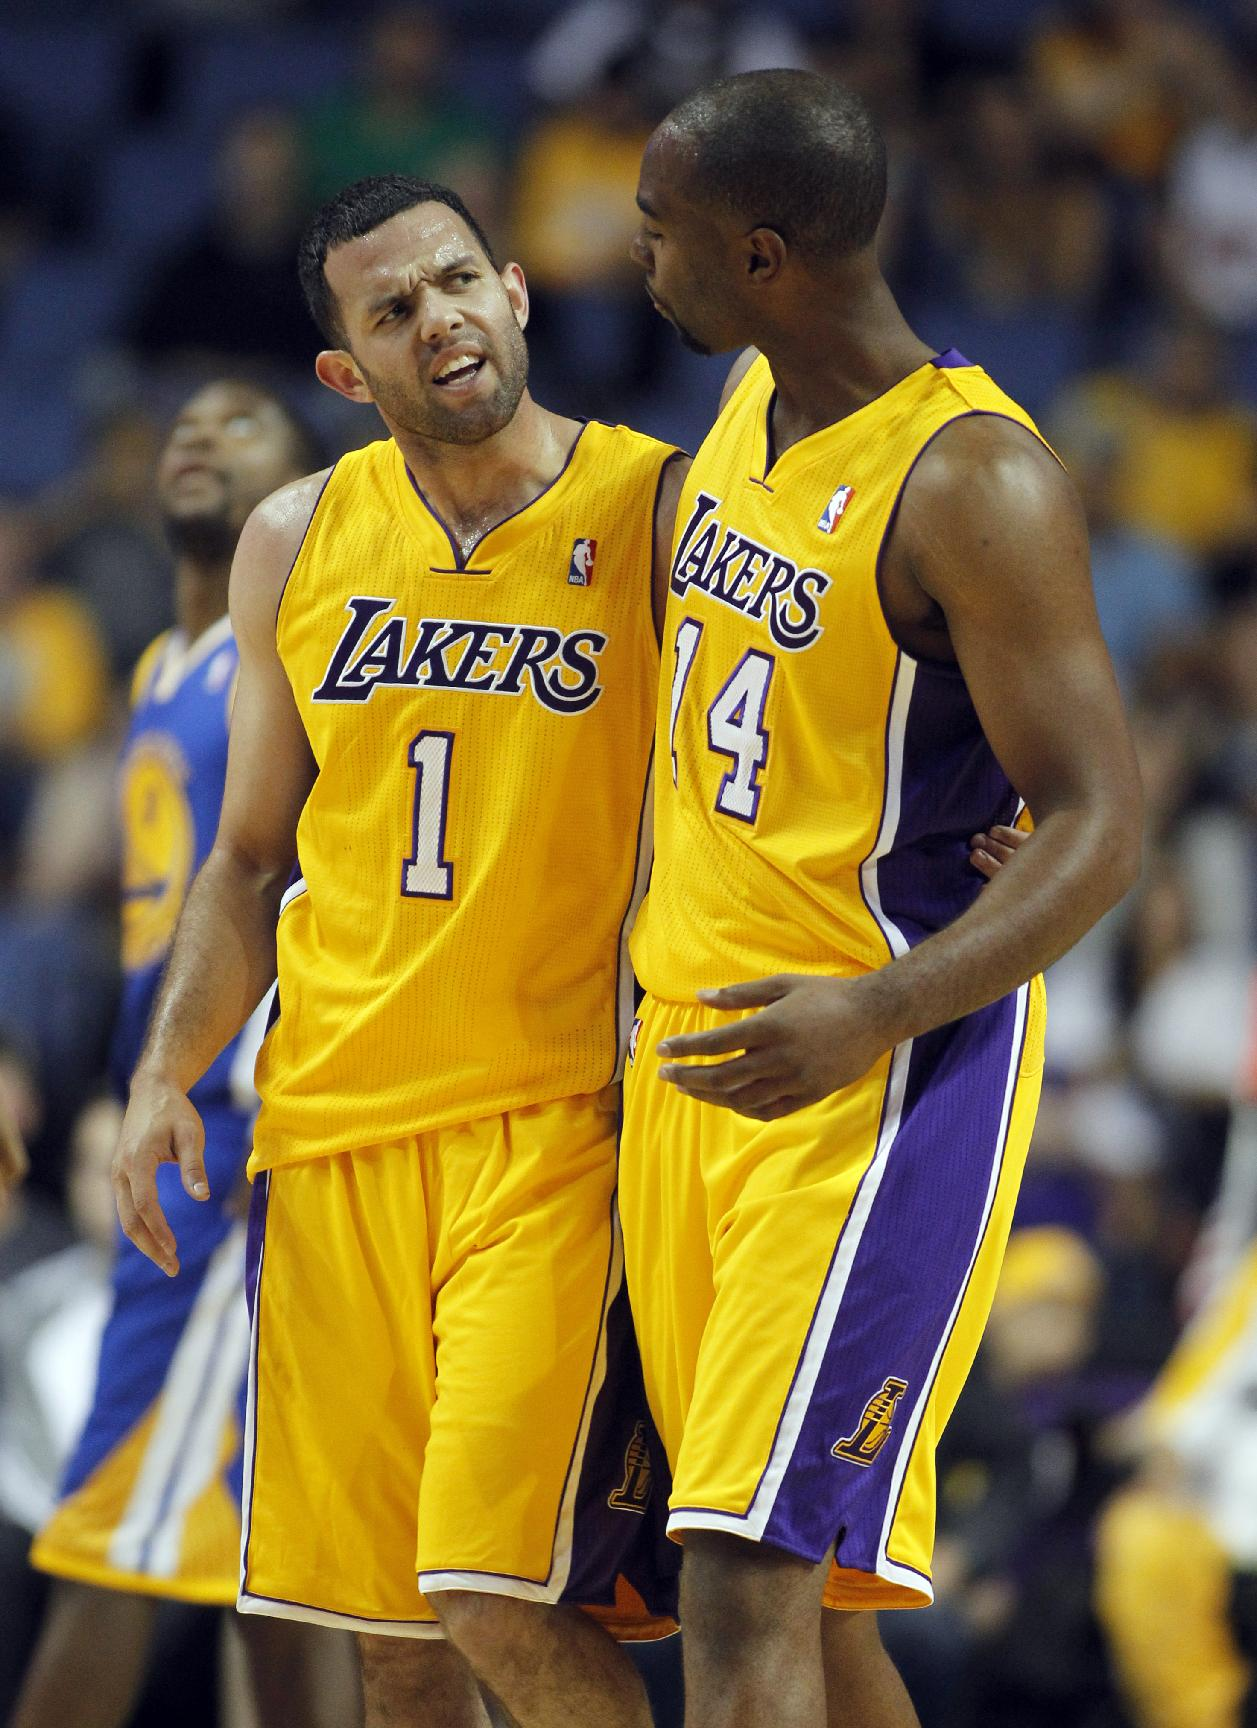 Los Angeles Lakers forward Marcus Landry, right, congratulates Lakers guard Jordan Farmar, left, after making a shot and collecting a foul against the Golden State Warriors in the fourth quarter during an NBA basketball preseason game Saturday, Oct. 5, 2013, in Ontario, Calif. Lakers won the game 104-95